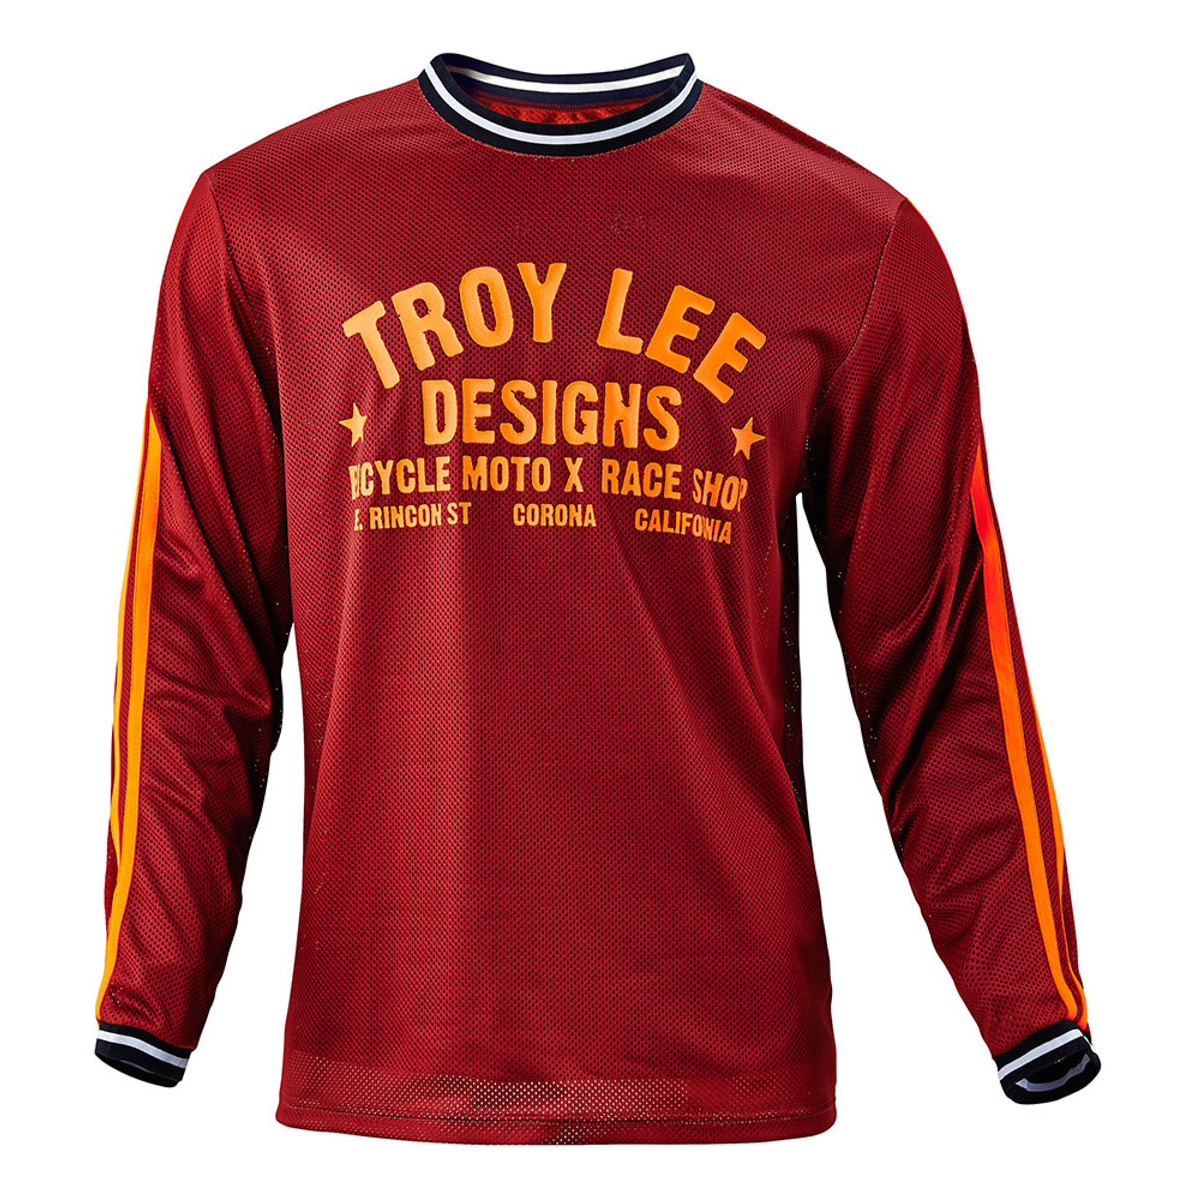 Retro Jerseys Troy Lee Designs Super Retro Jersey Reviews Comparisons Specs